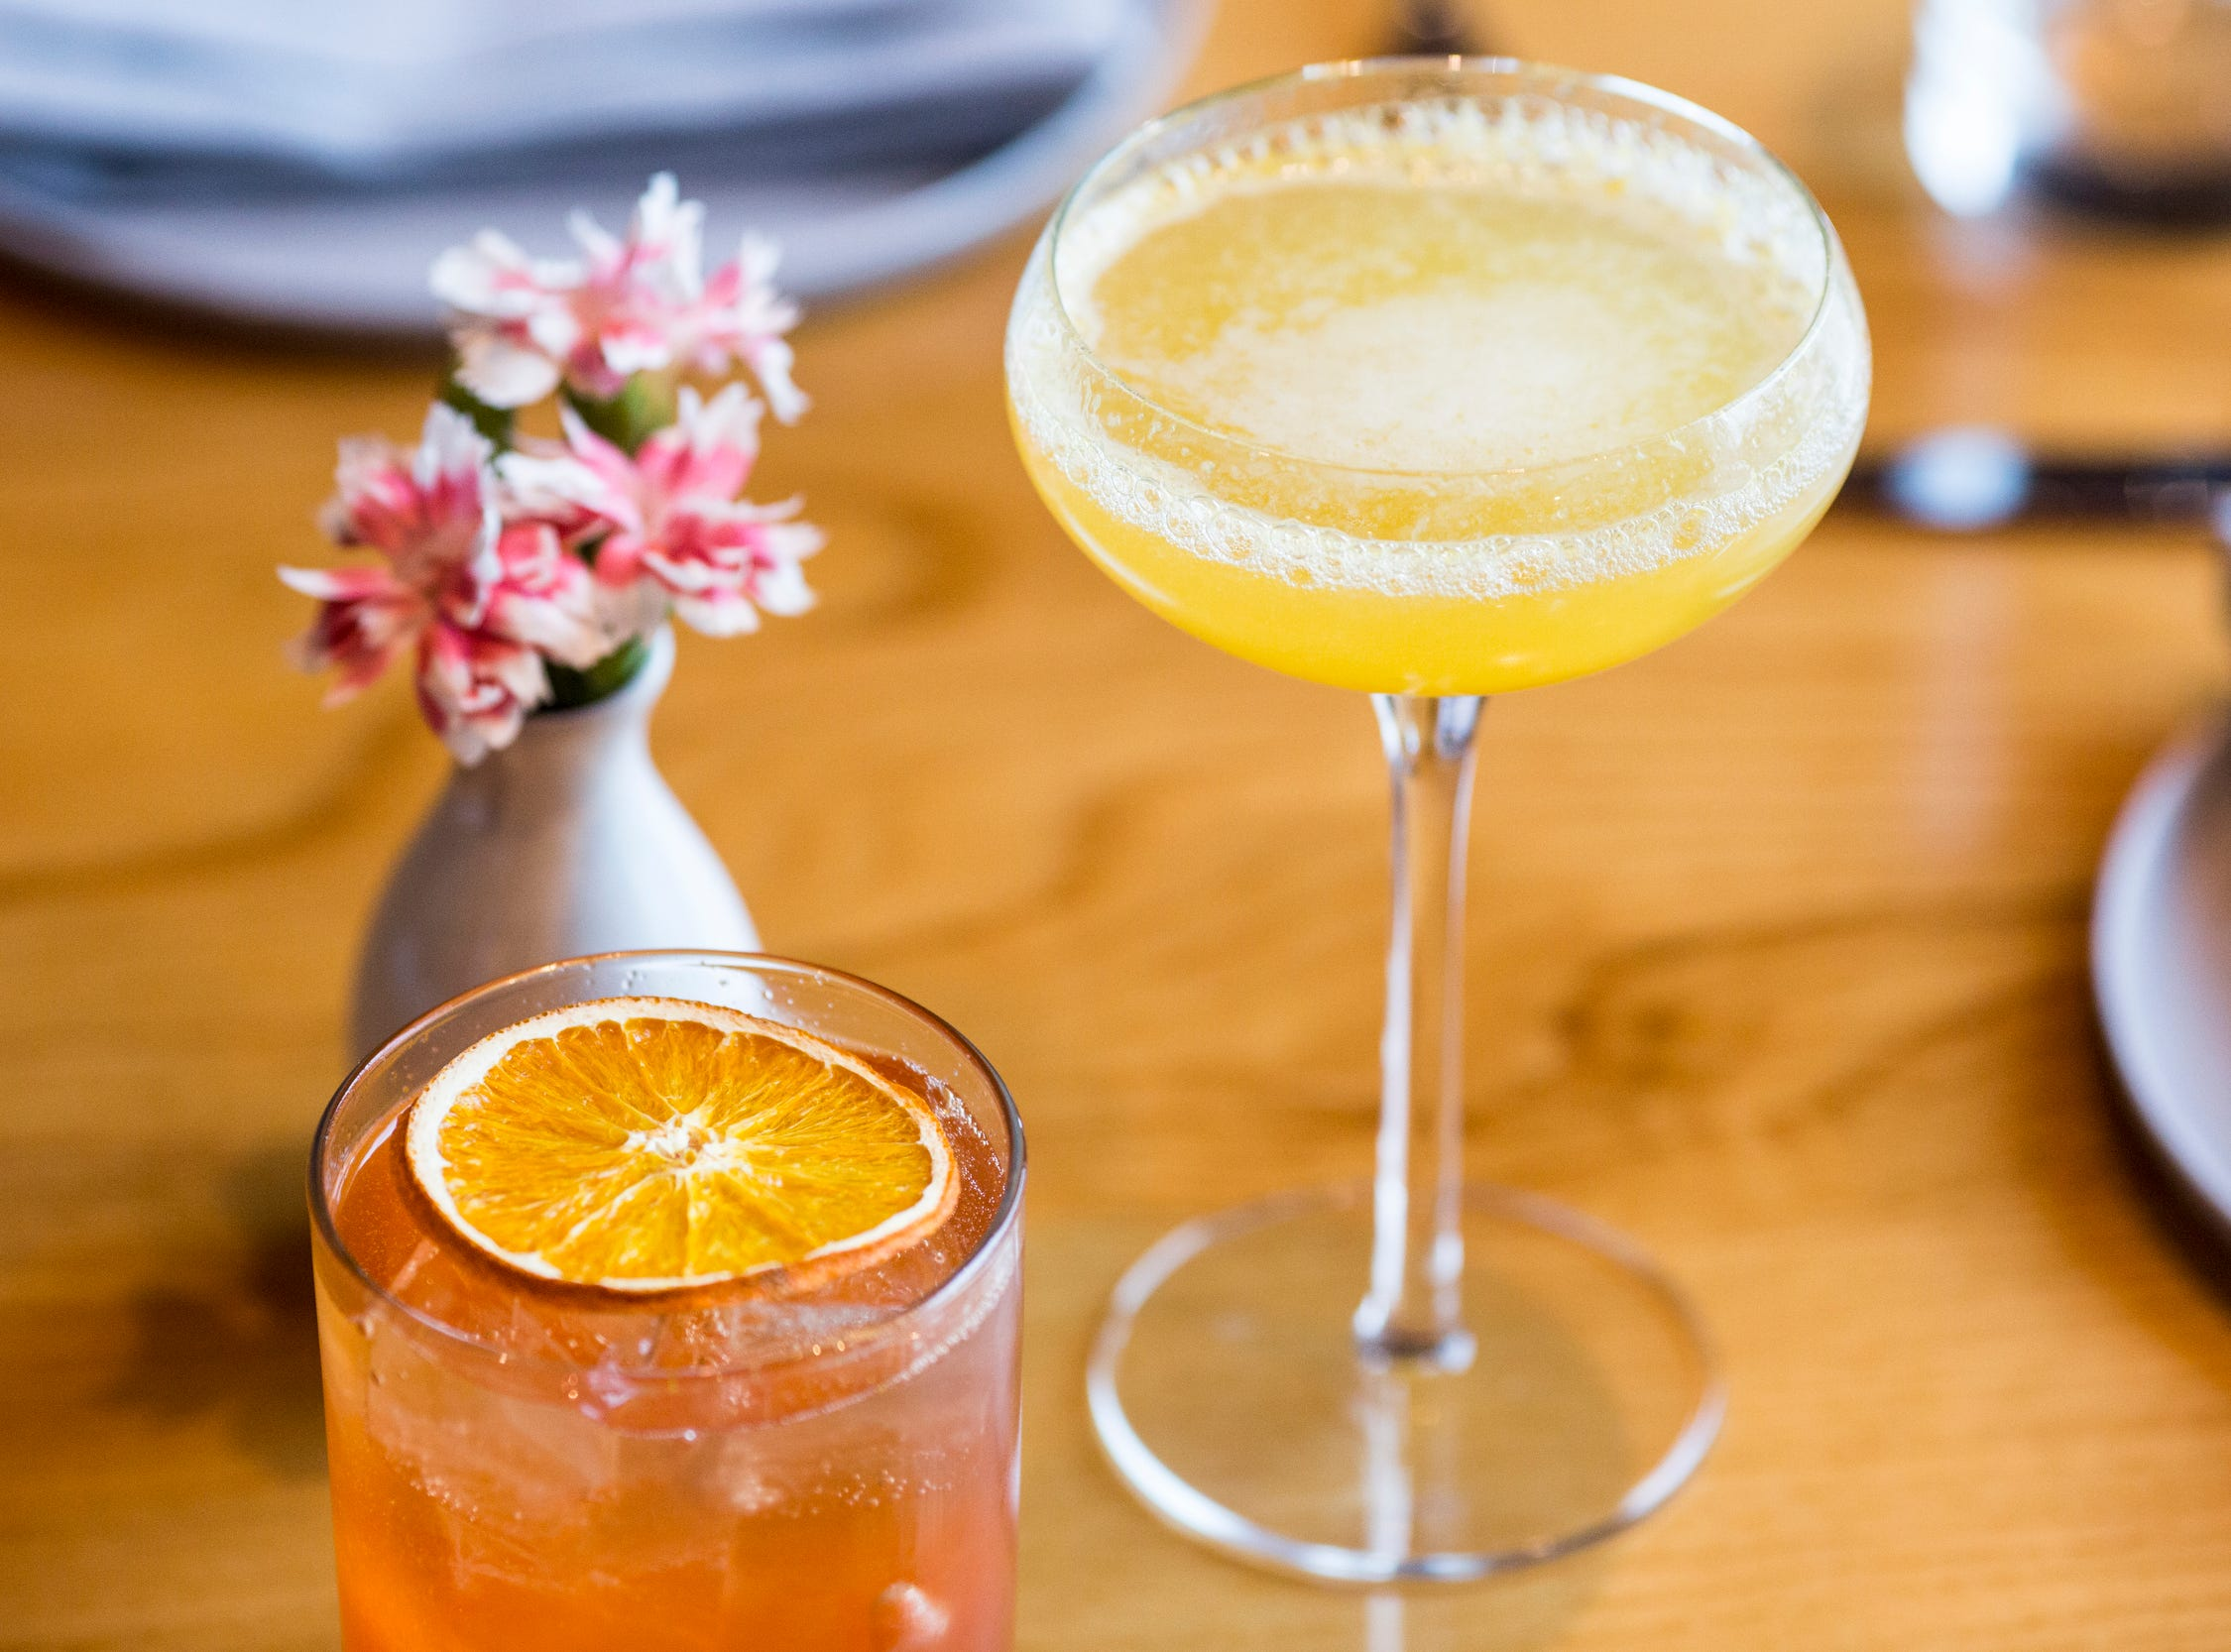 February 10, 2019 - A rose spritz and mimosa are available during Sunday brunch at PO Press Public House & Provisions in Collierville. PO Press Public House & Provisions is located at 148 N Main St. in Collierville.